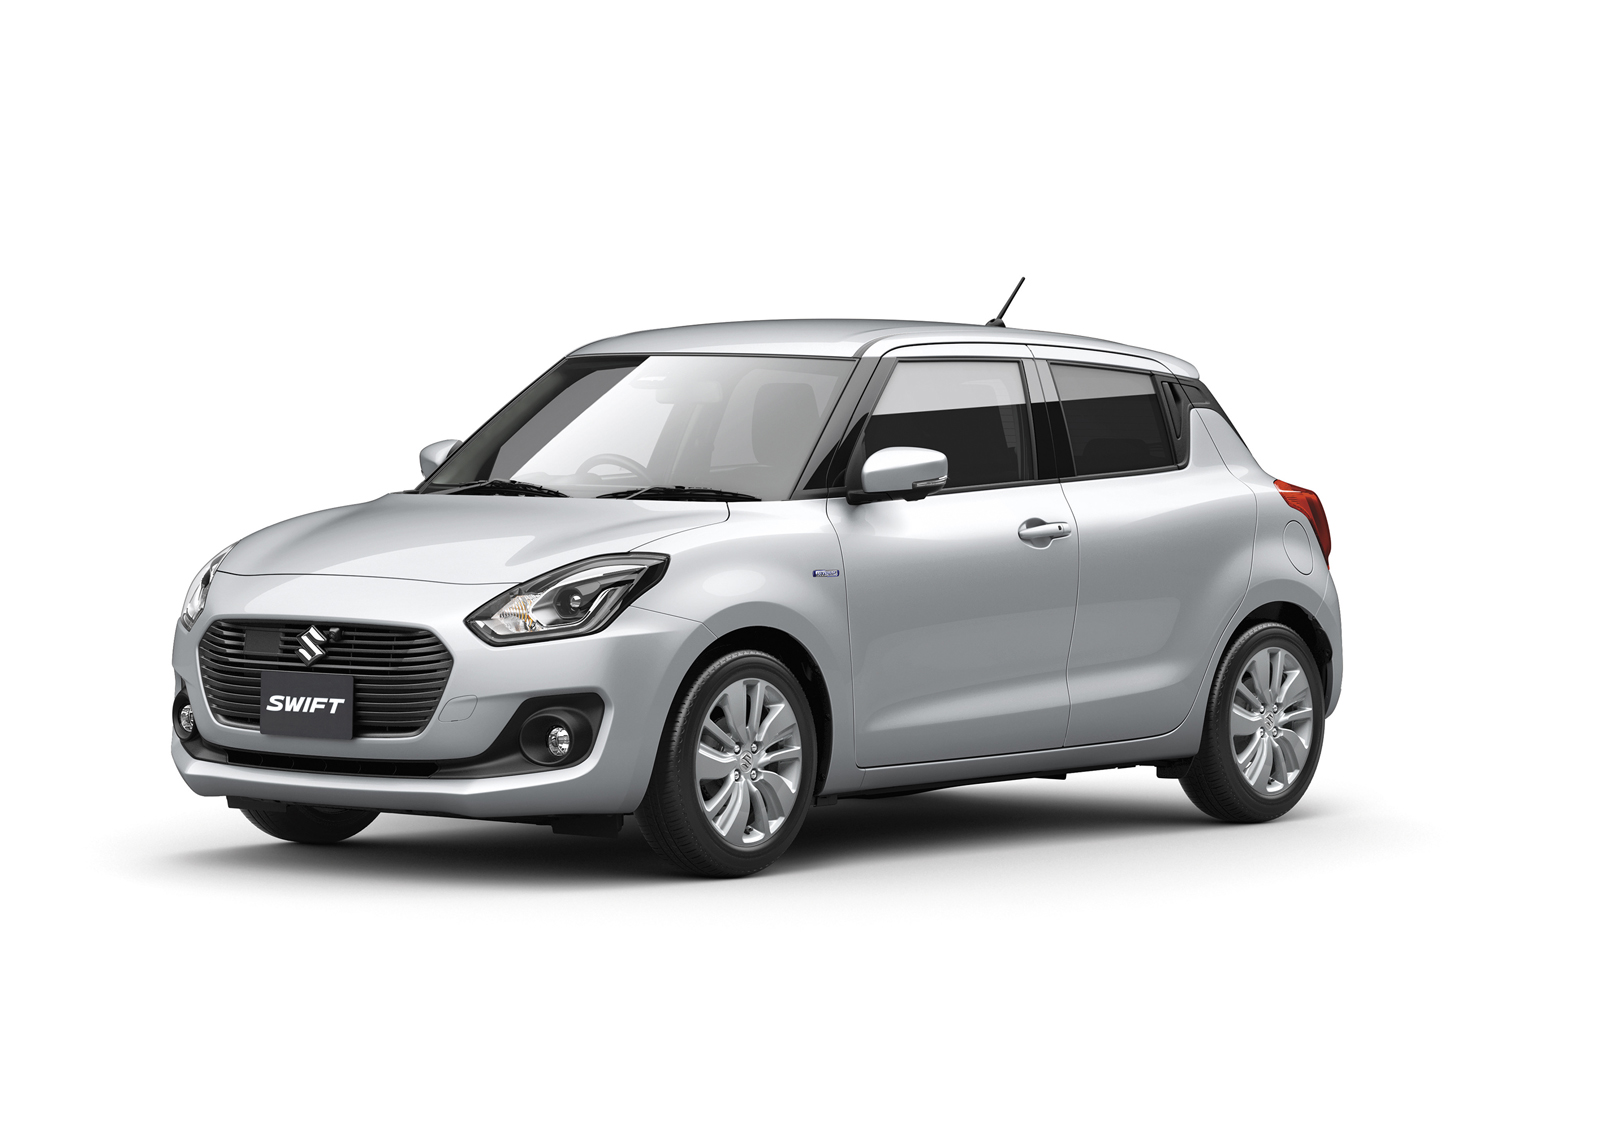 Suzuki Swift 2017 (6)